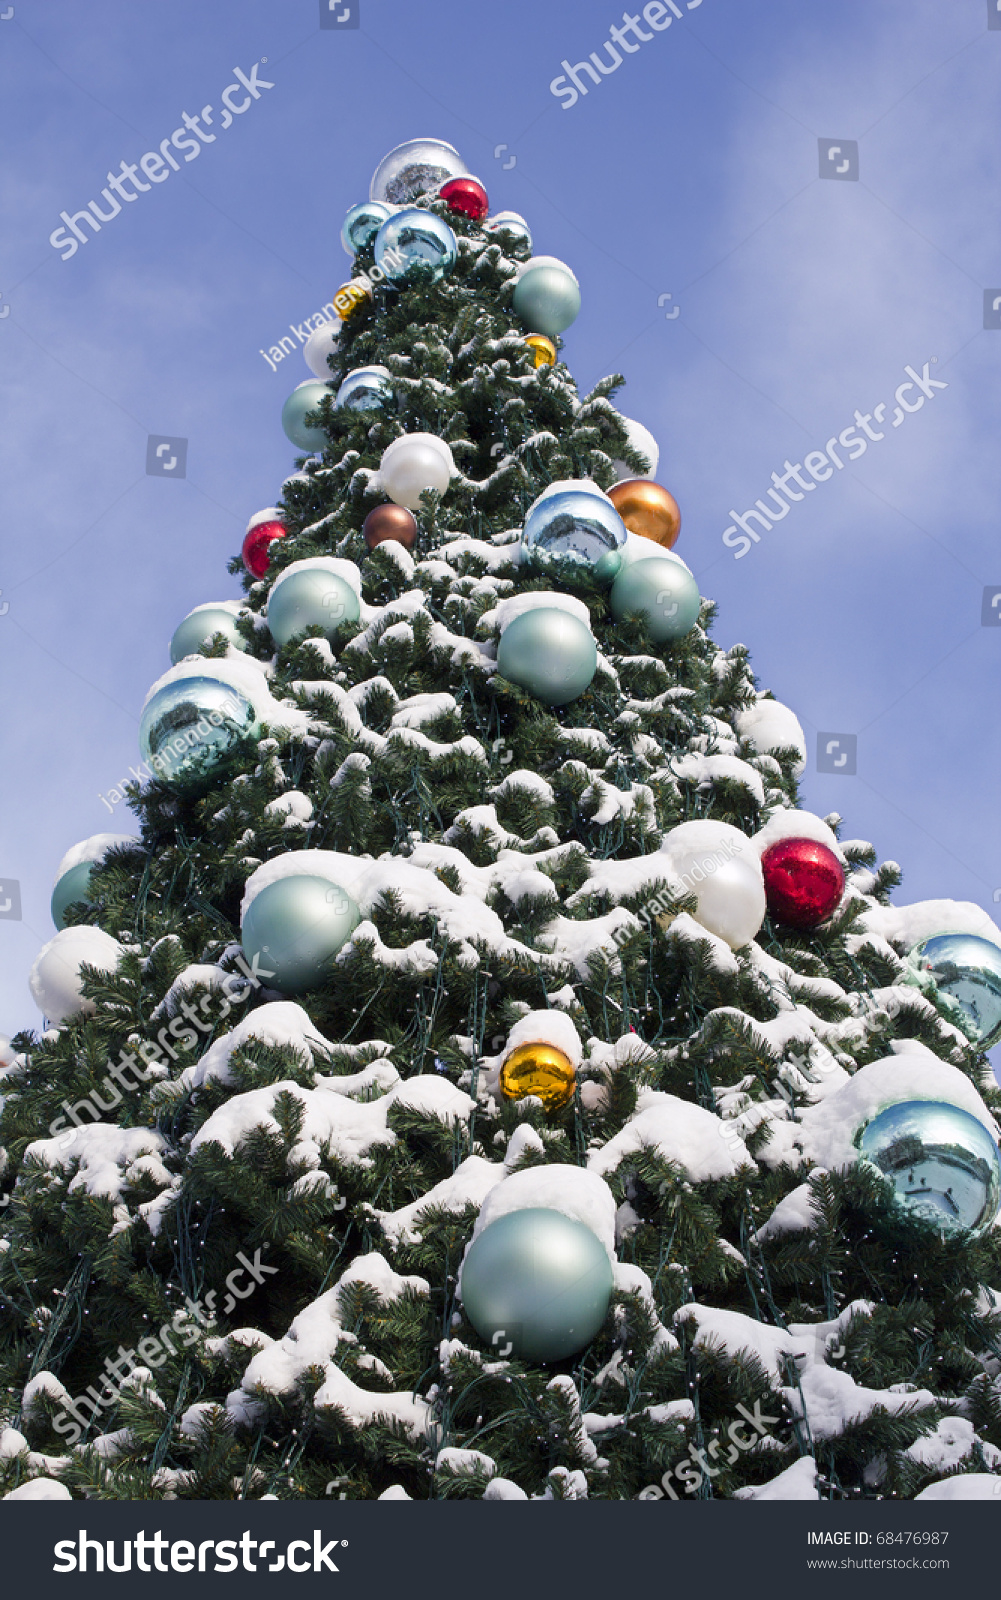 Large Outdoor Christmas Tree Decorated With Balls And Covered With Snow